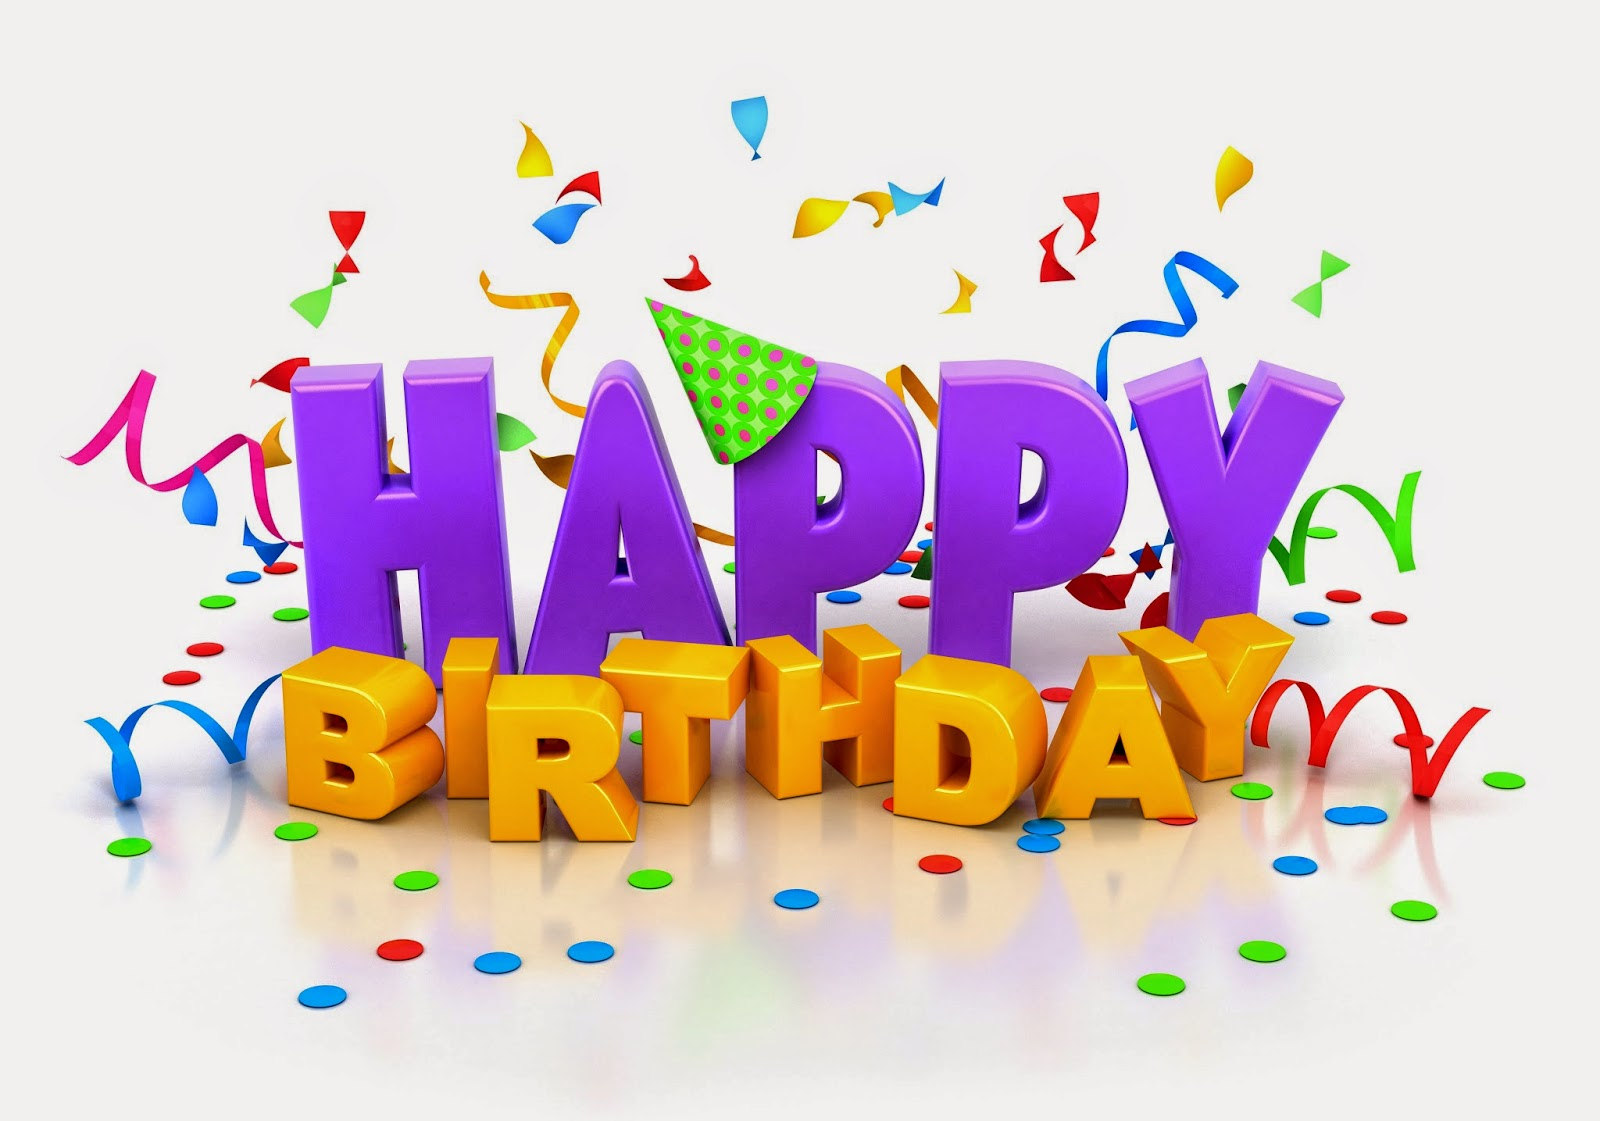 happy-birthday-wishes-text-for-facebook-sharing-email-5700x3995.jpg